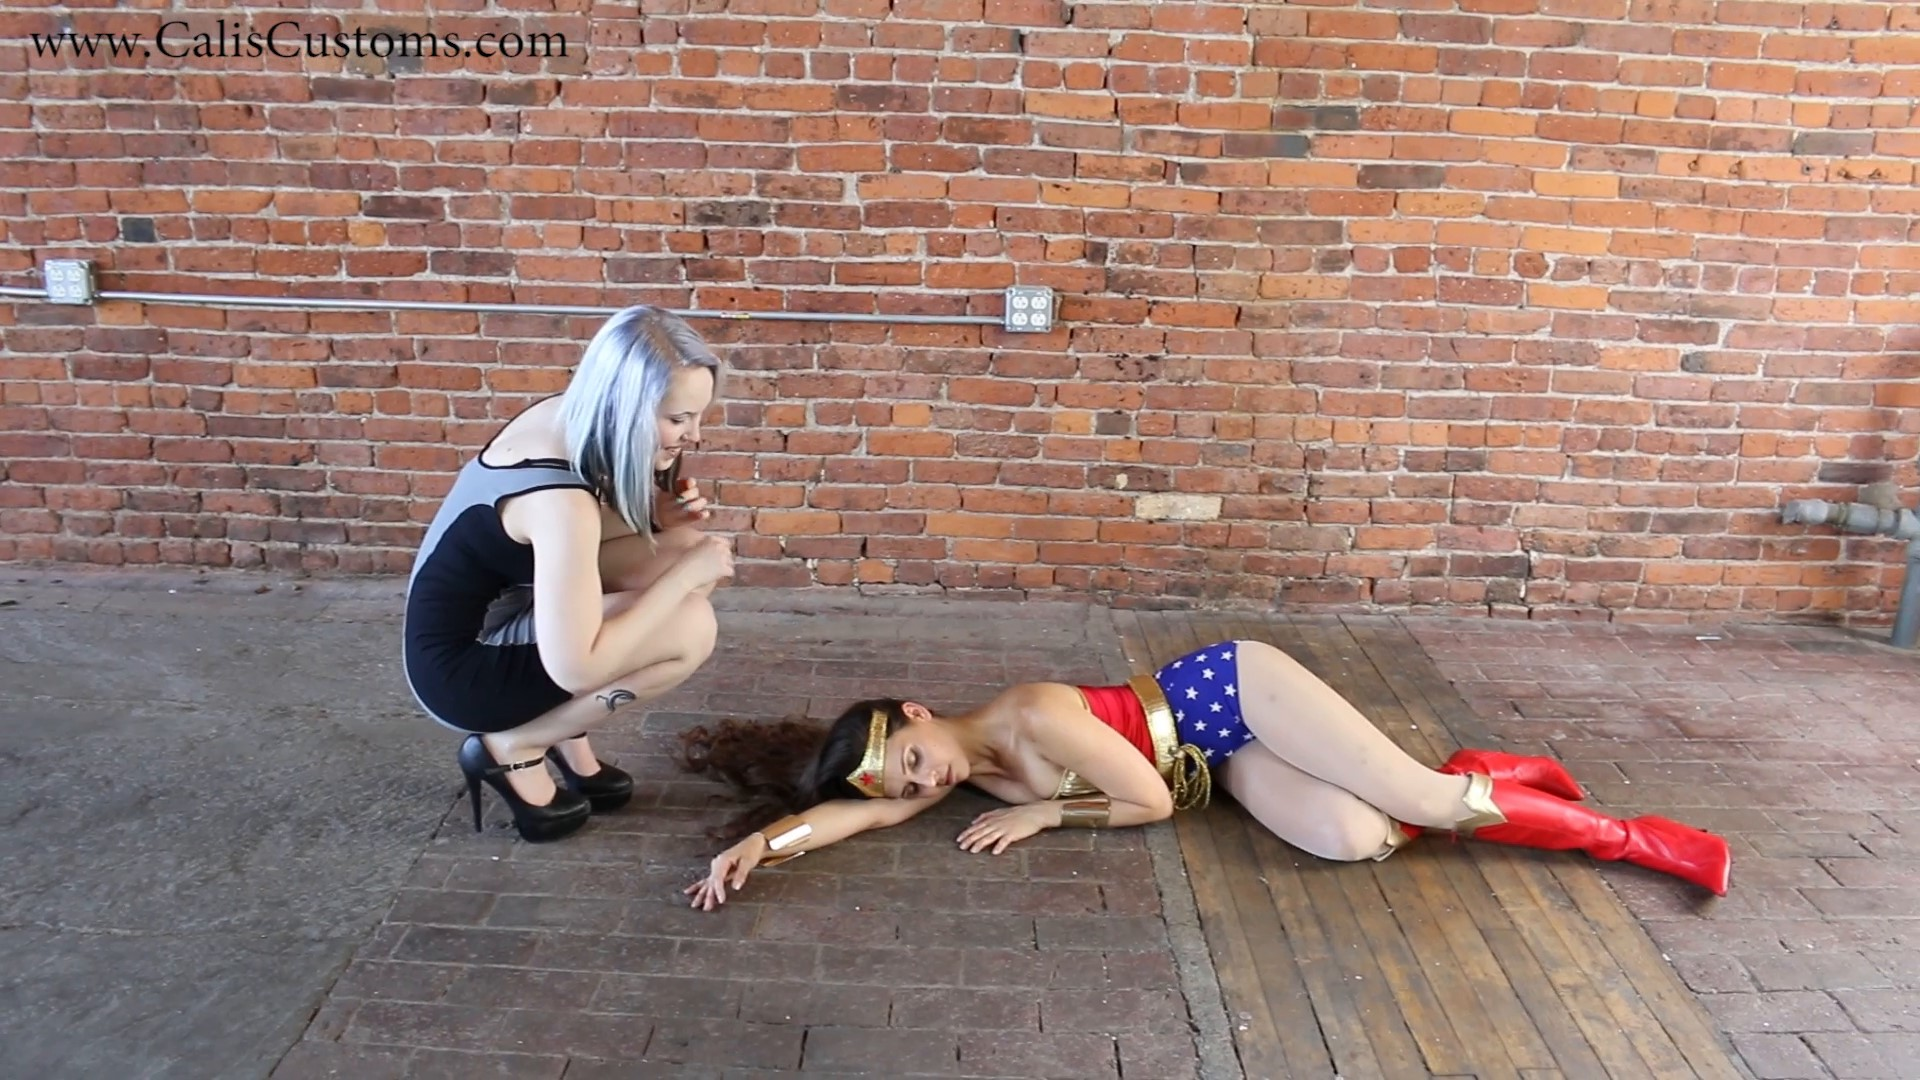 CALI The Wonder Woman KO Trap (9)